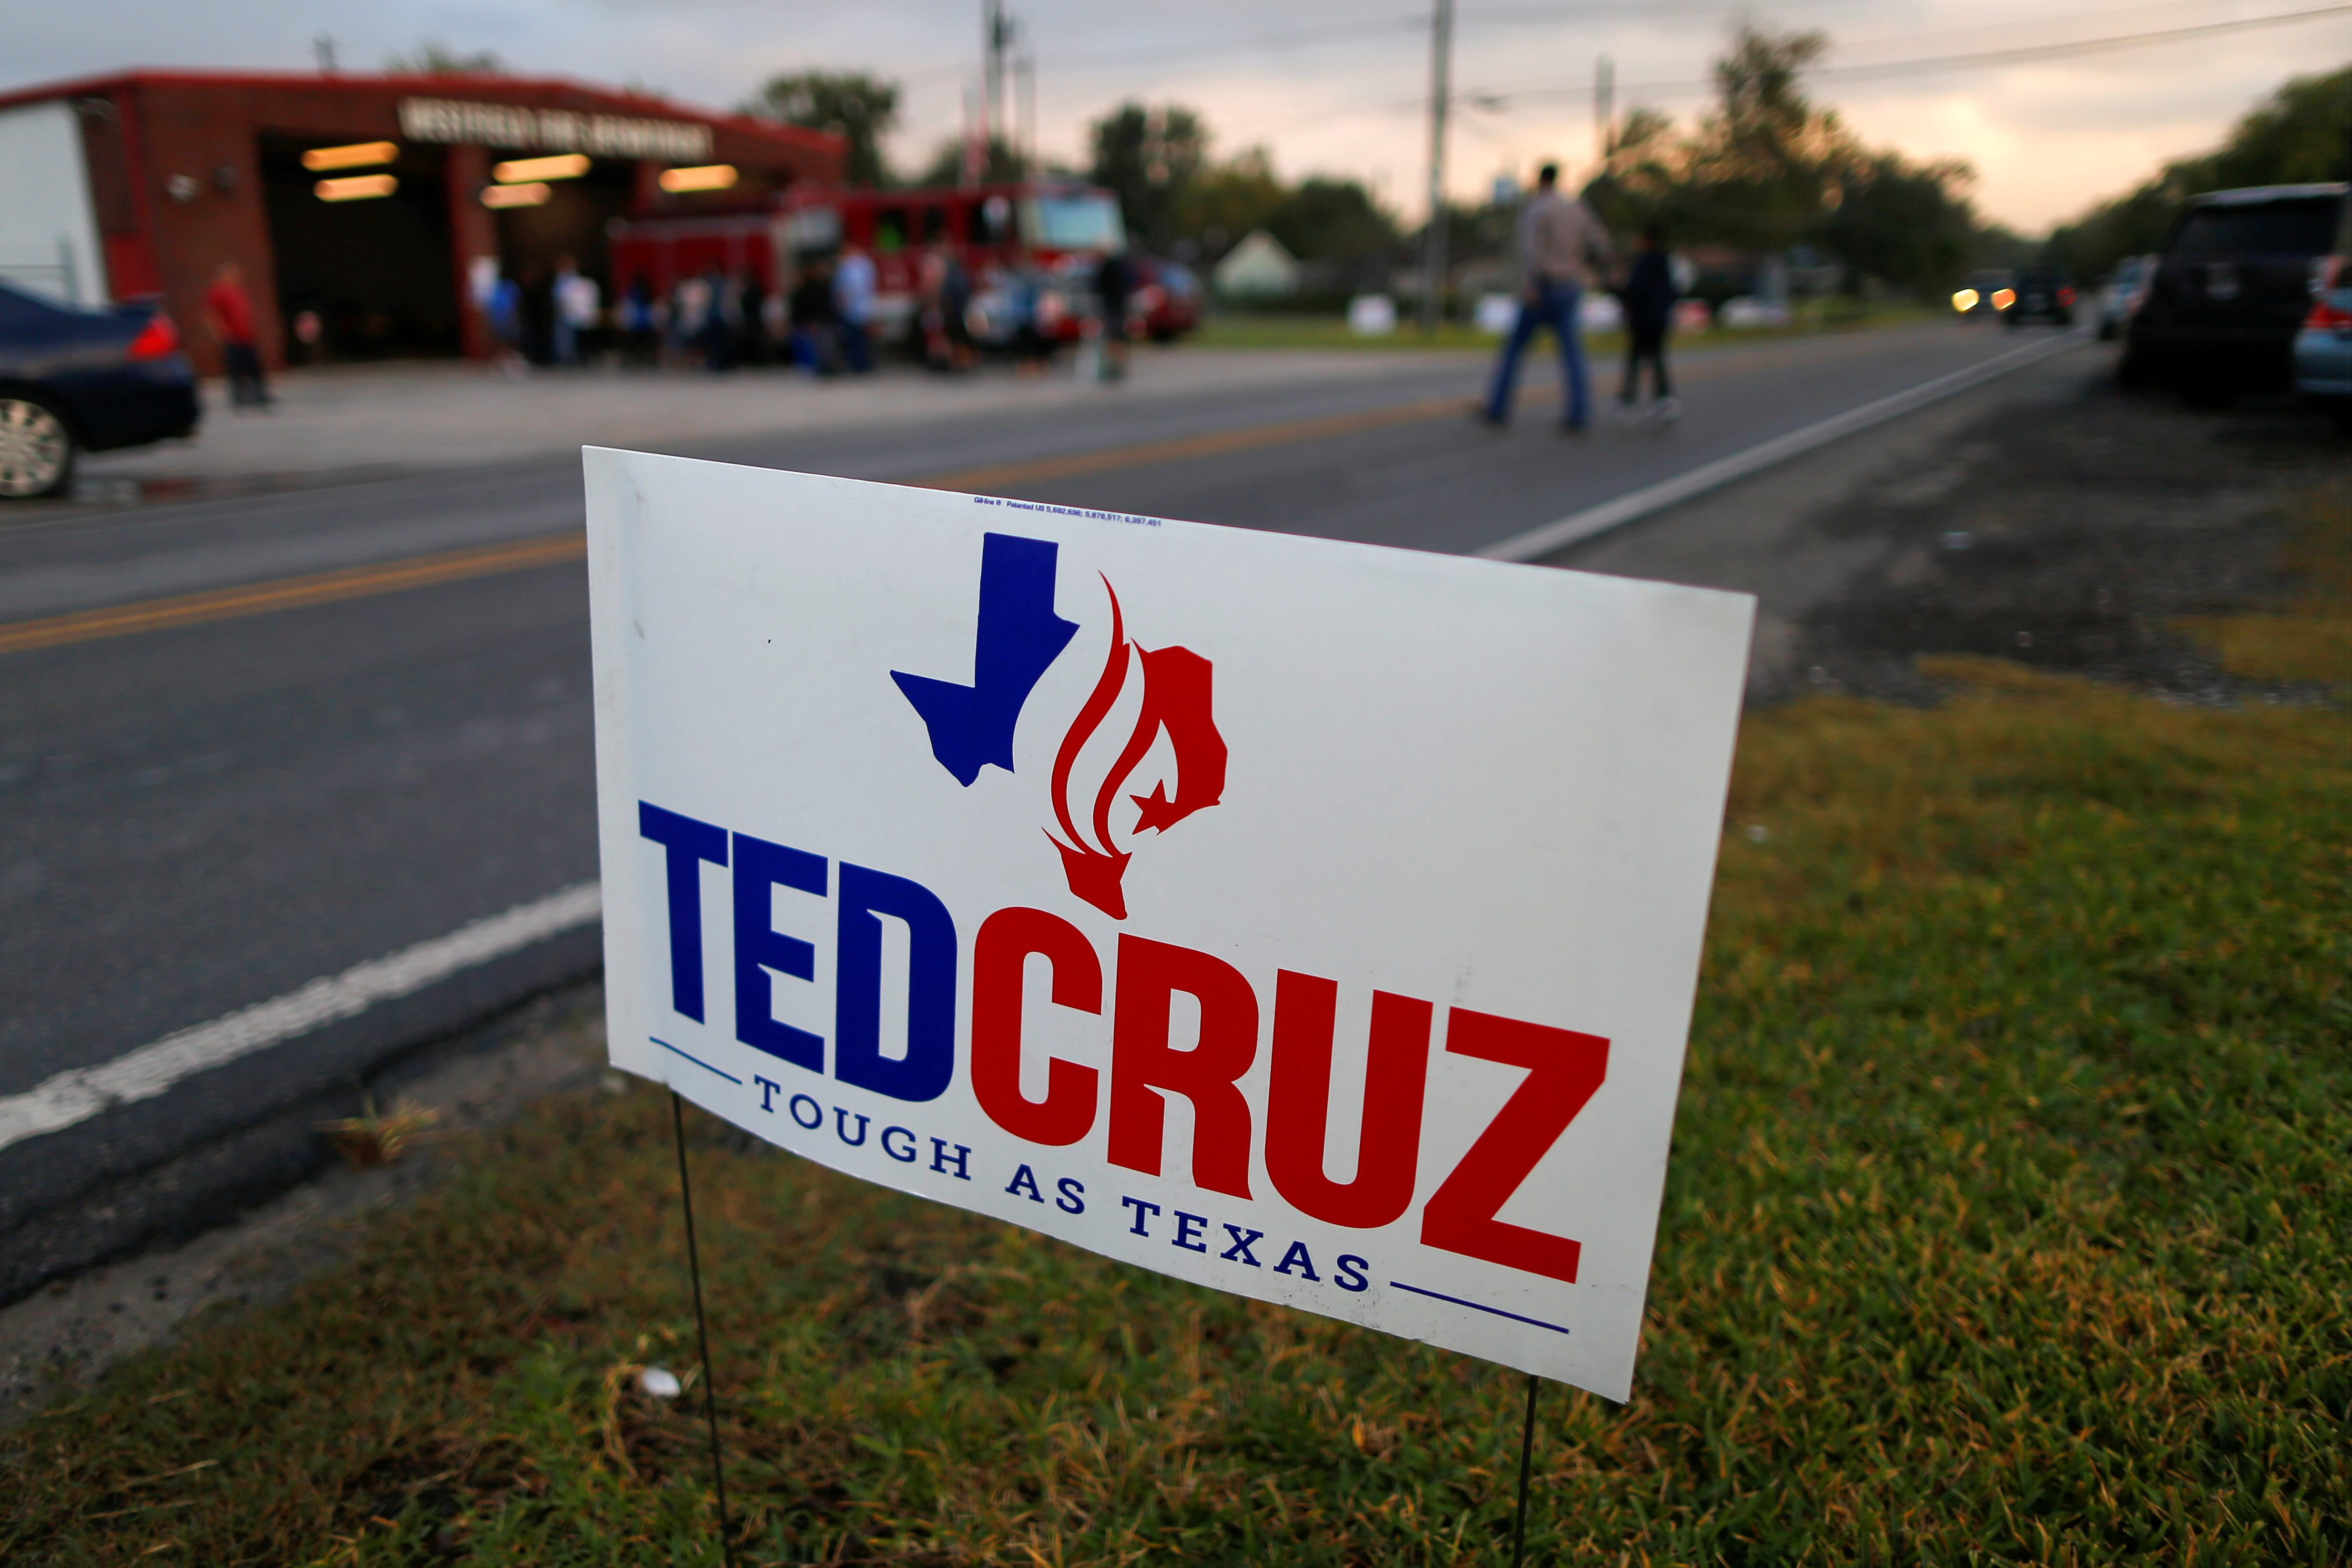 Ted Cruz campaign sign